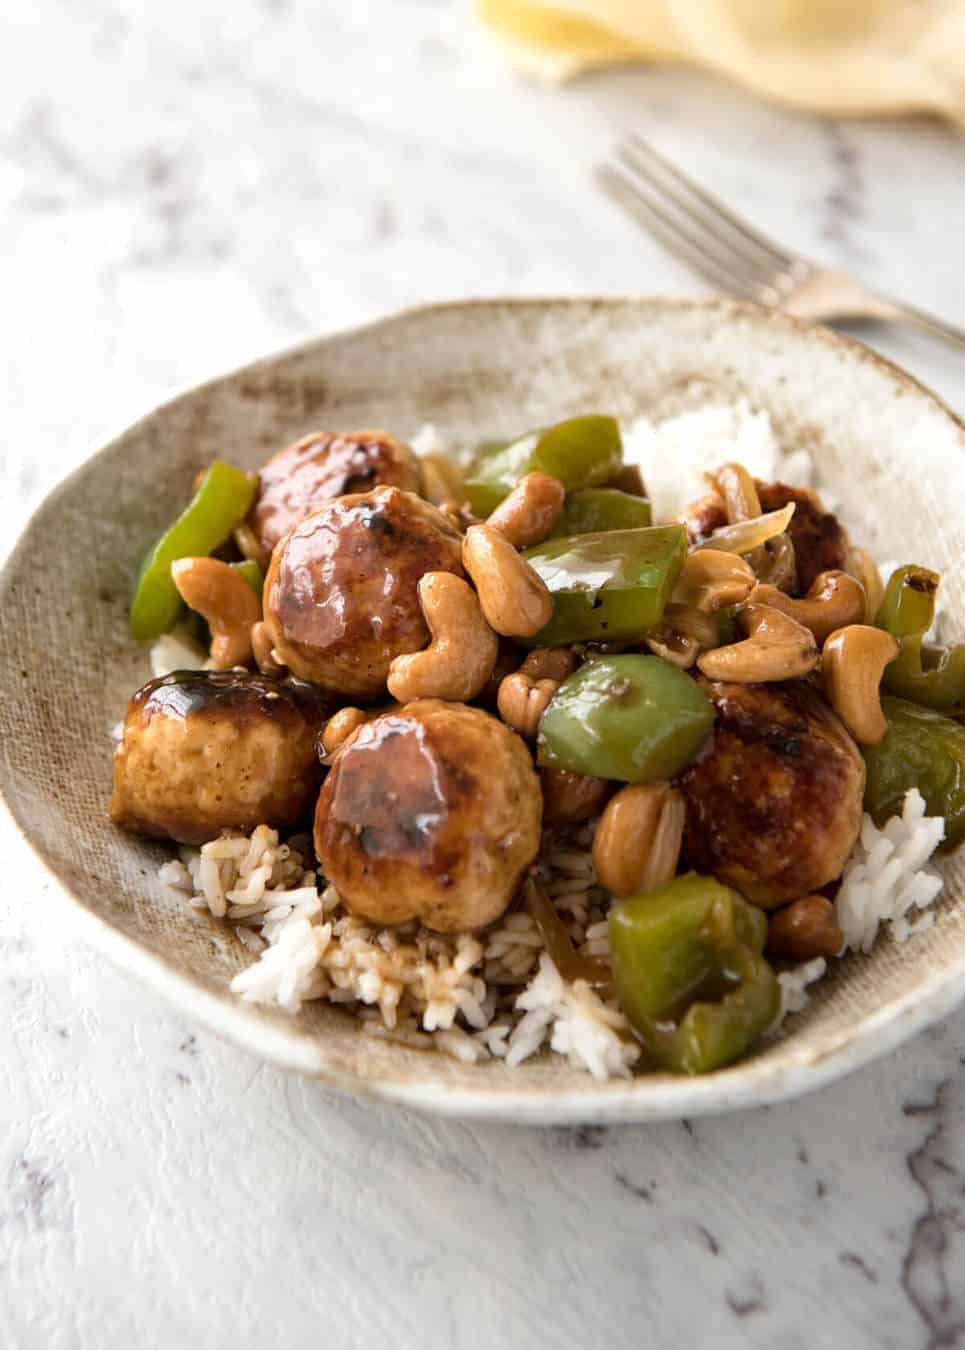 This Chinese Cashew Chicken Meatballs recipe is everything you know and love about Cashew Chicken...made with meatballs! recipetineats.com